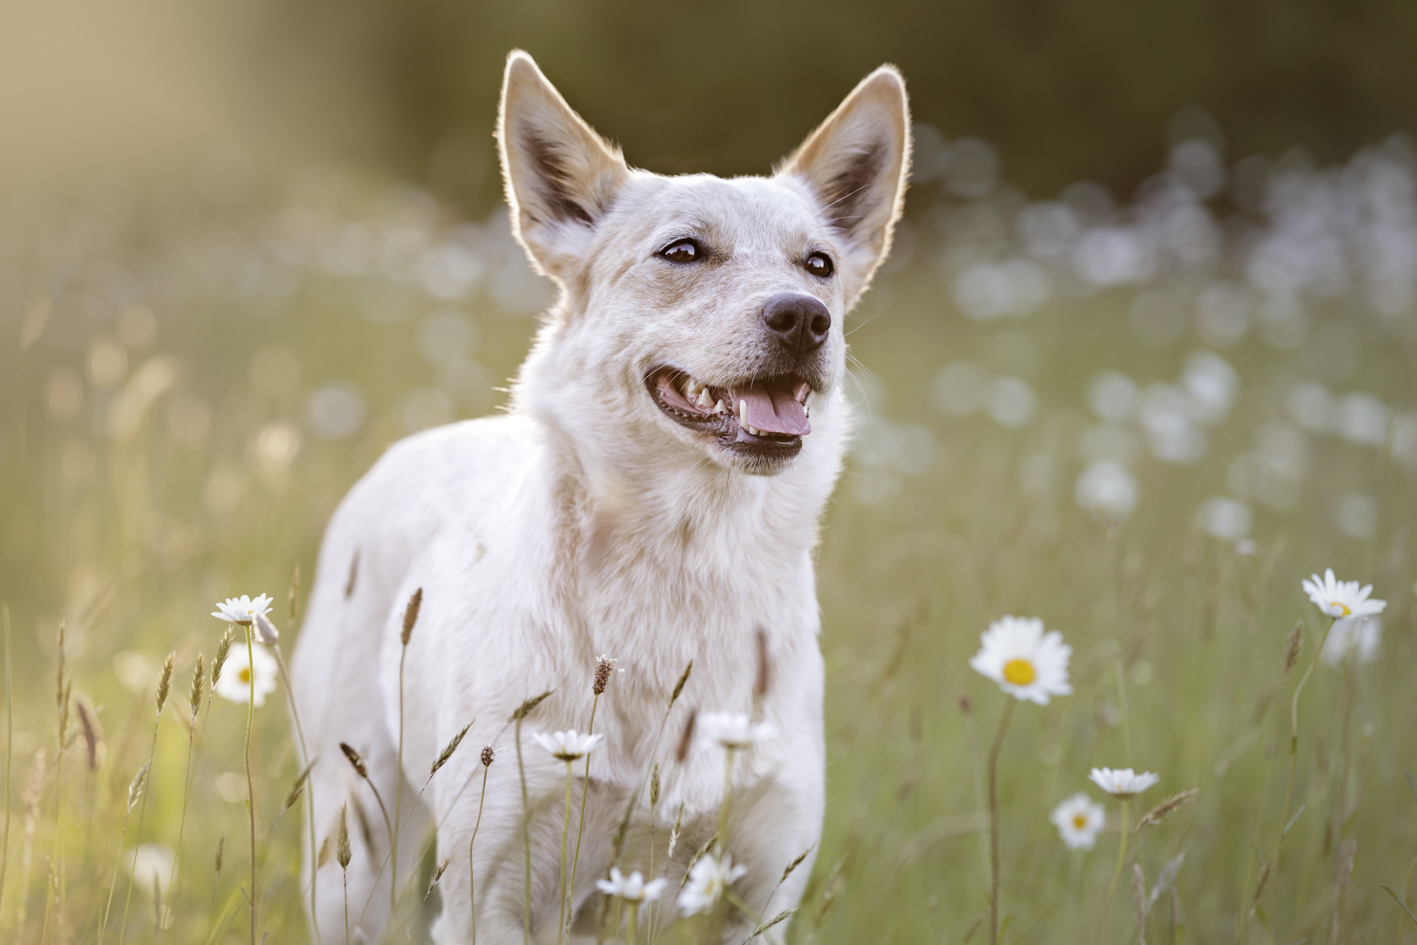 Australian cattle dog in flowers